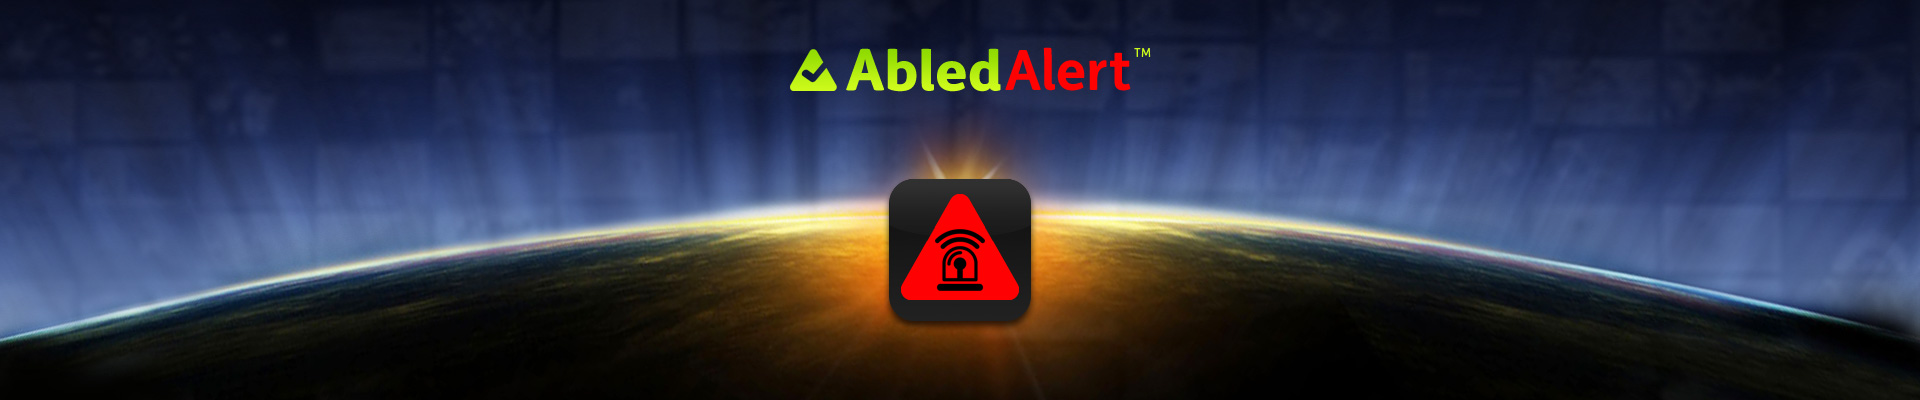 AbledAlert Banner shows a red version of the rounded green Abled triangle with a vector illustration of a siren with a soundwave coming off it.